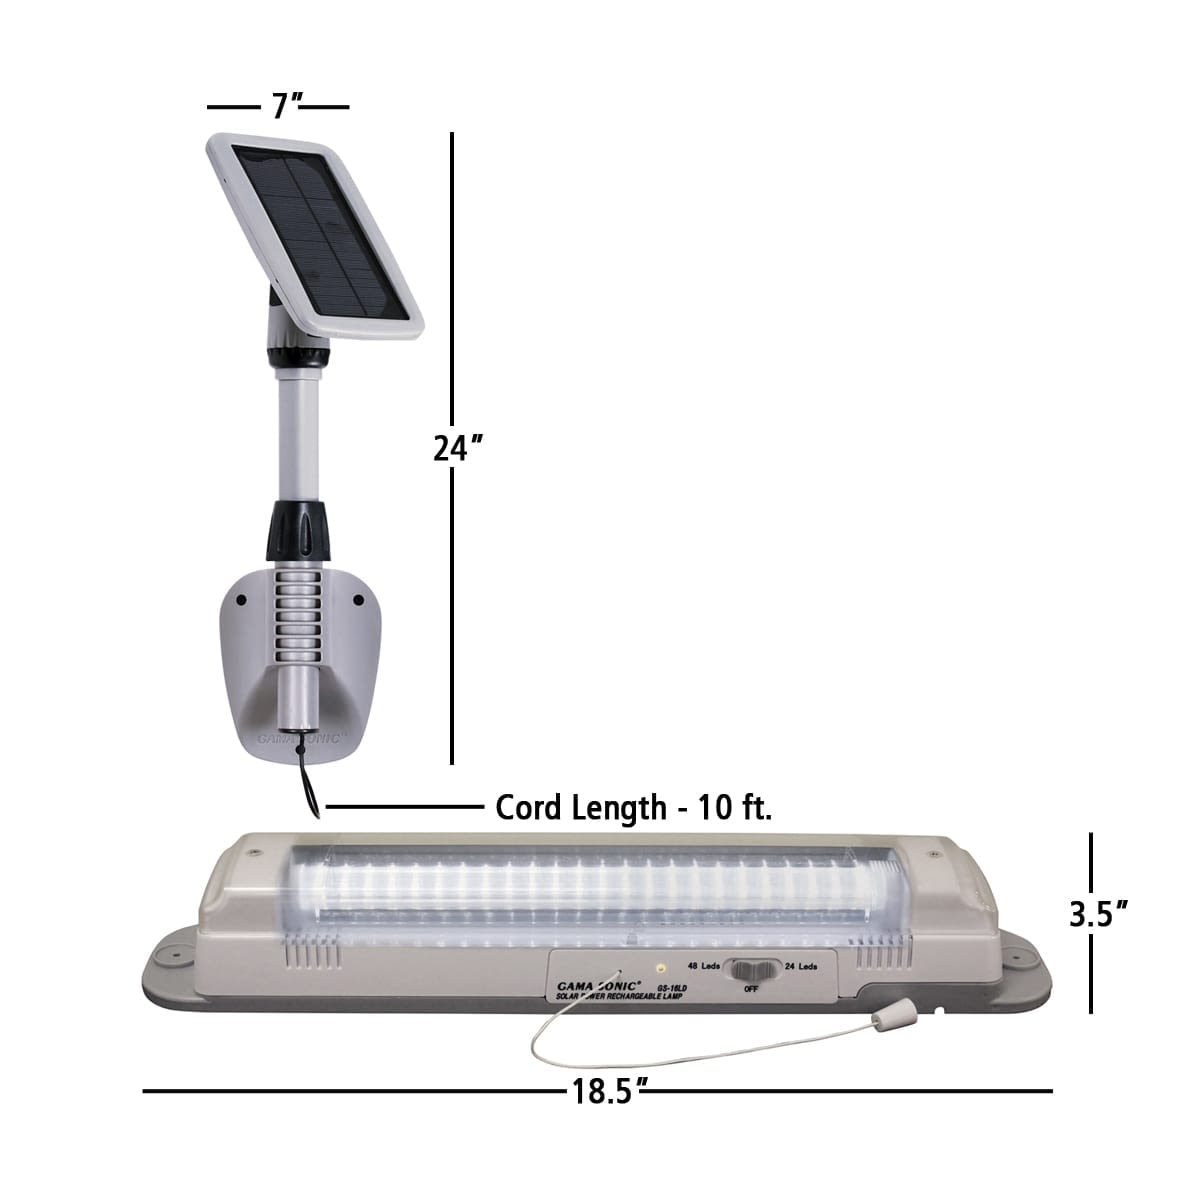 Solar Powered Shed Light-Light My Shed III-GS-16LD By Gama Sonic_measurements